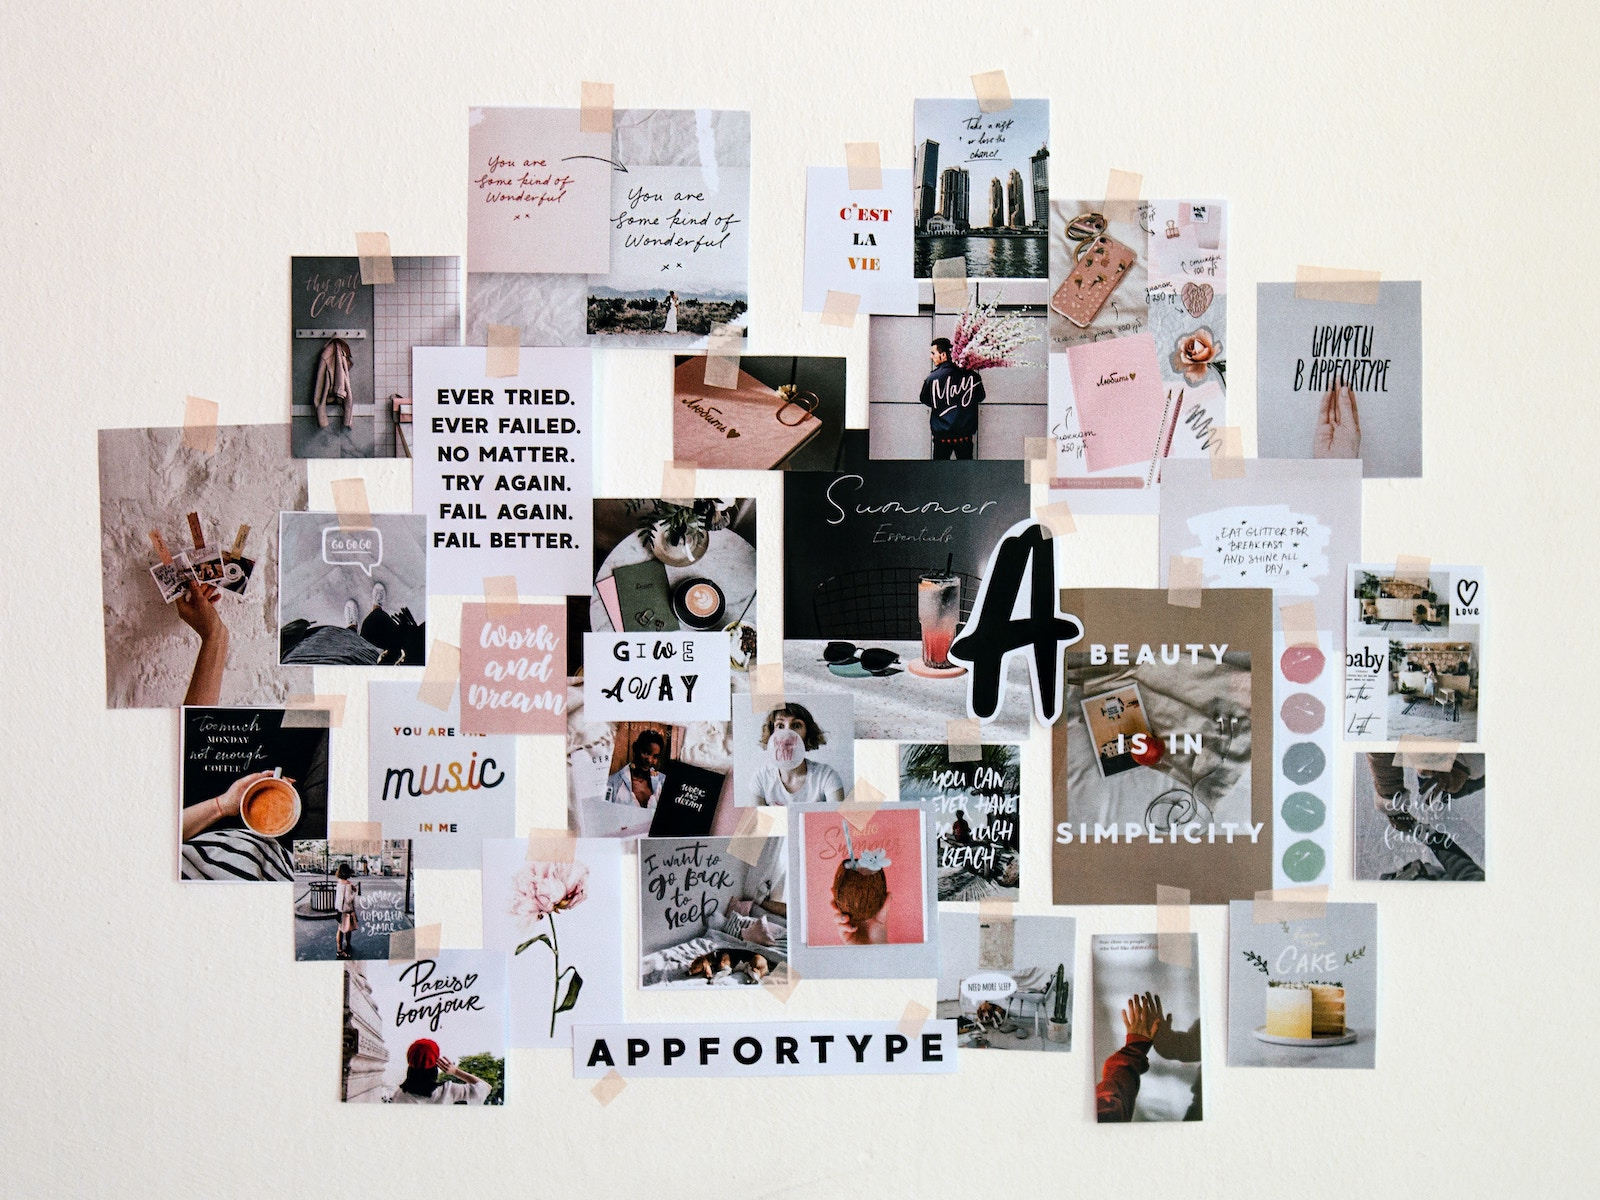 decorative collage on wall Photo by Andy Art on Unsplash